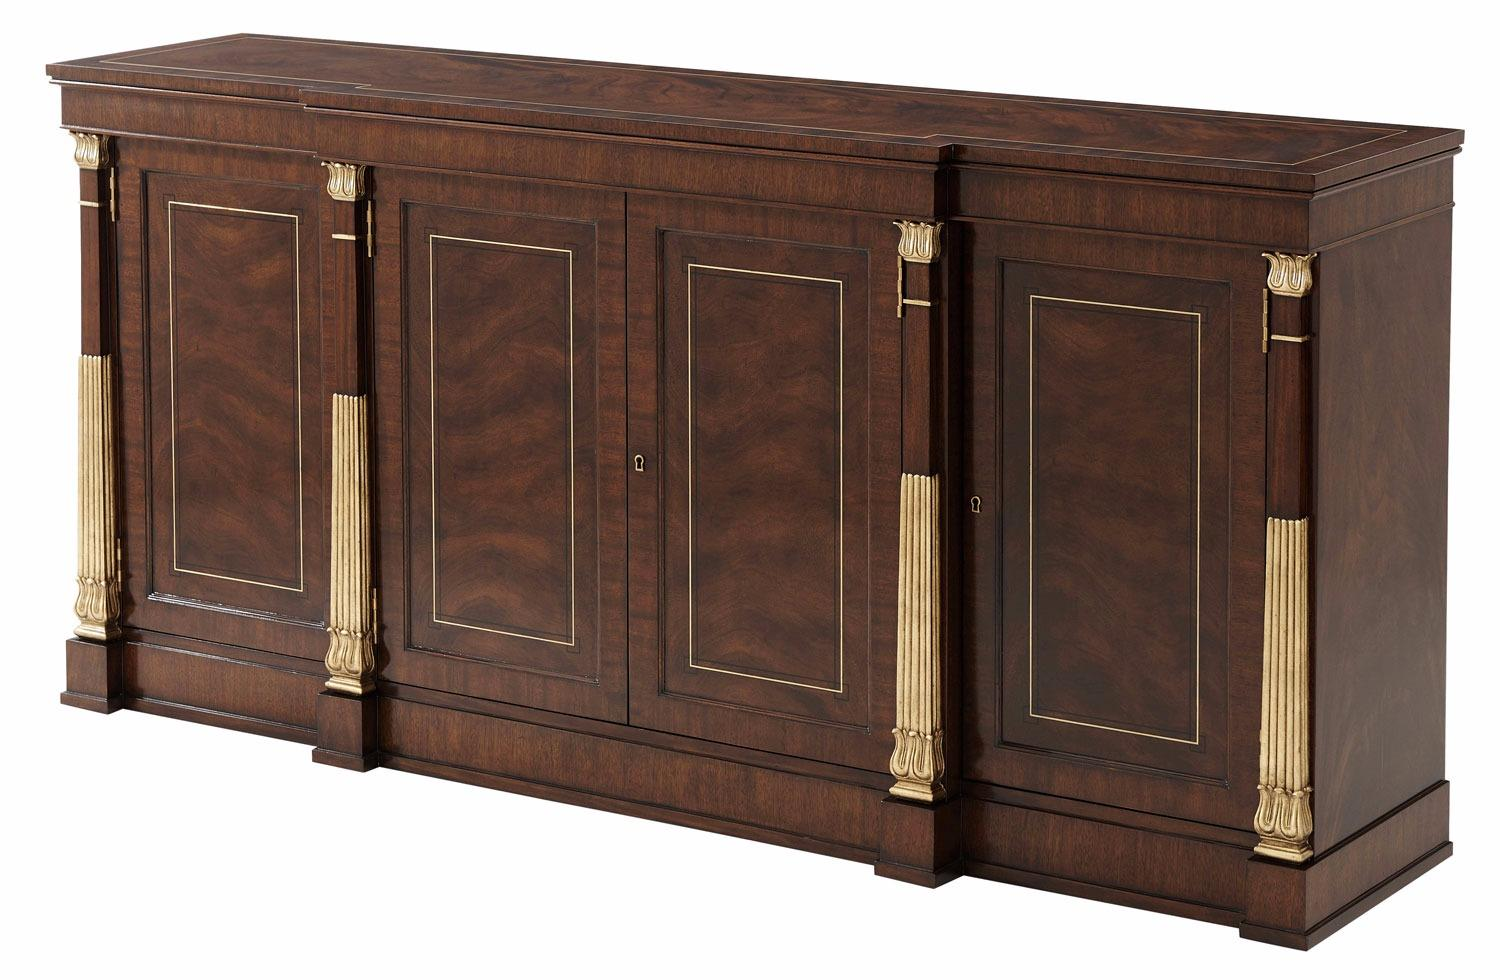 Swirl mahogany veneered and crossbanded buffet